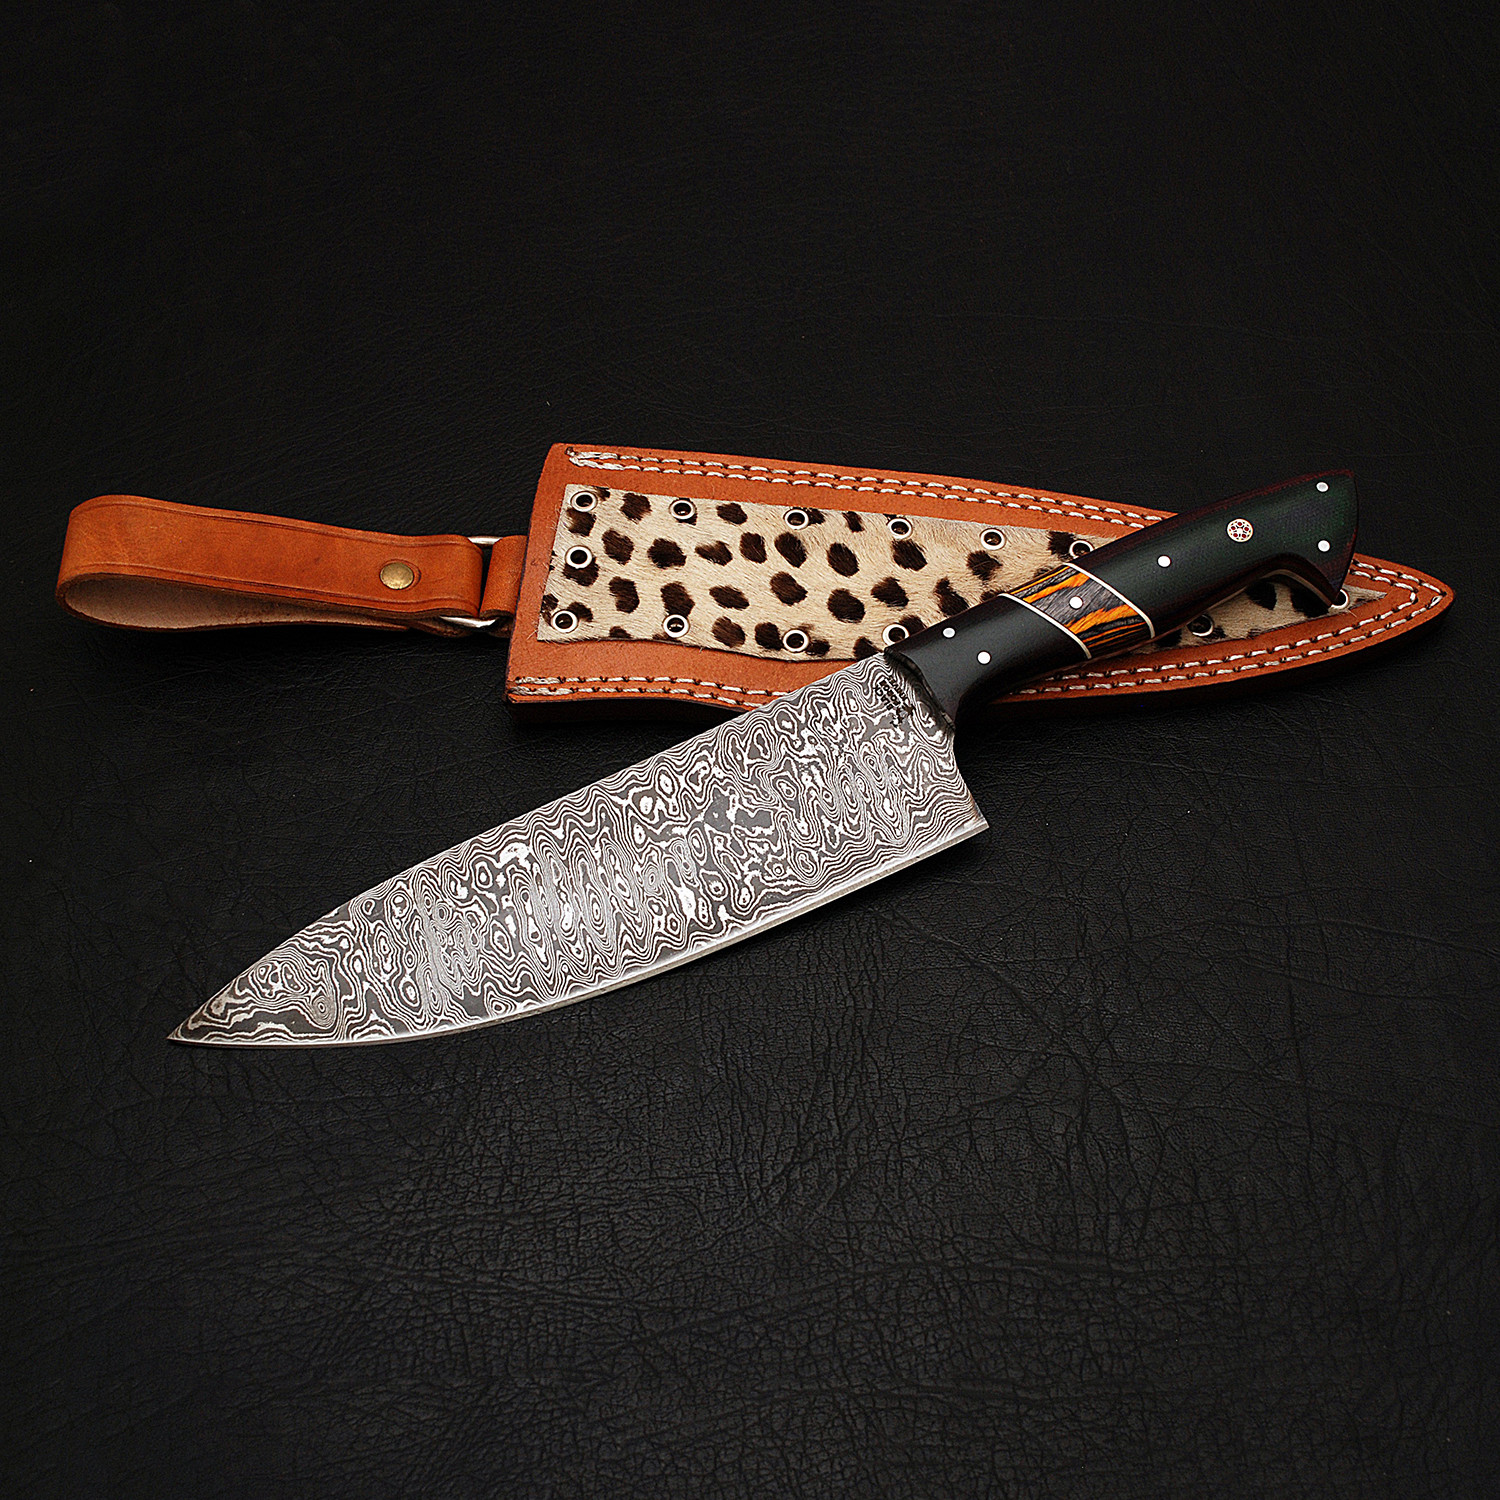 damascus chef knife // 9165 - black forge knives - touch